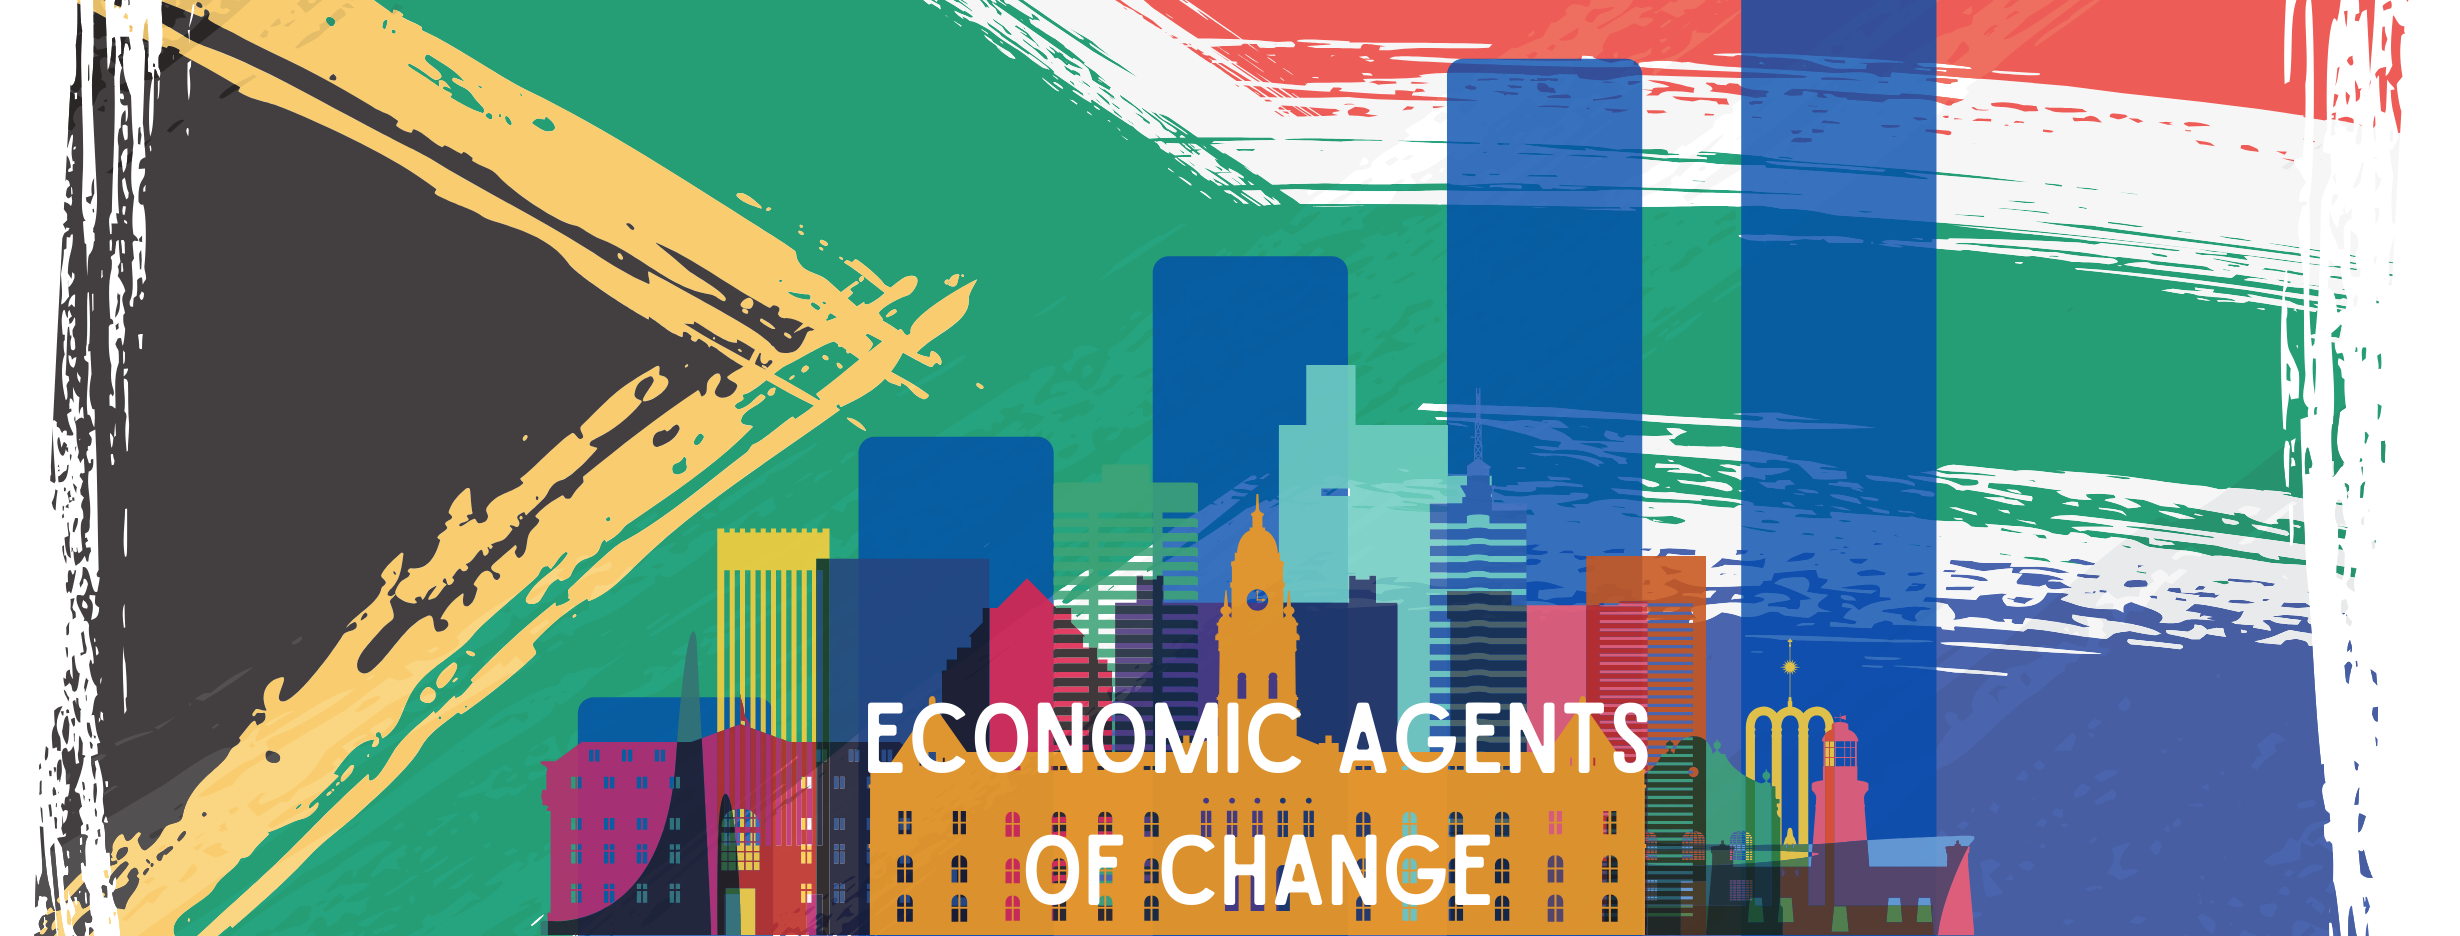 economic agents of change